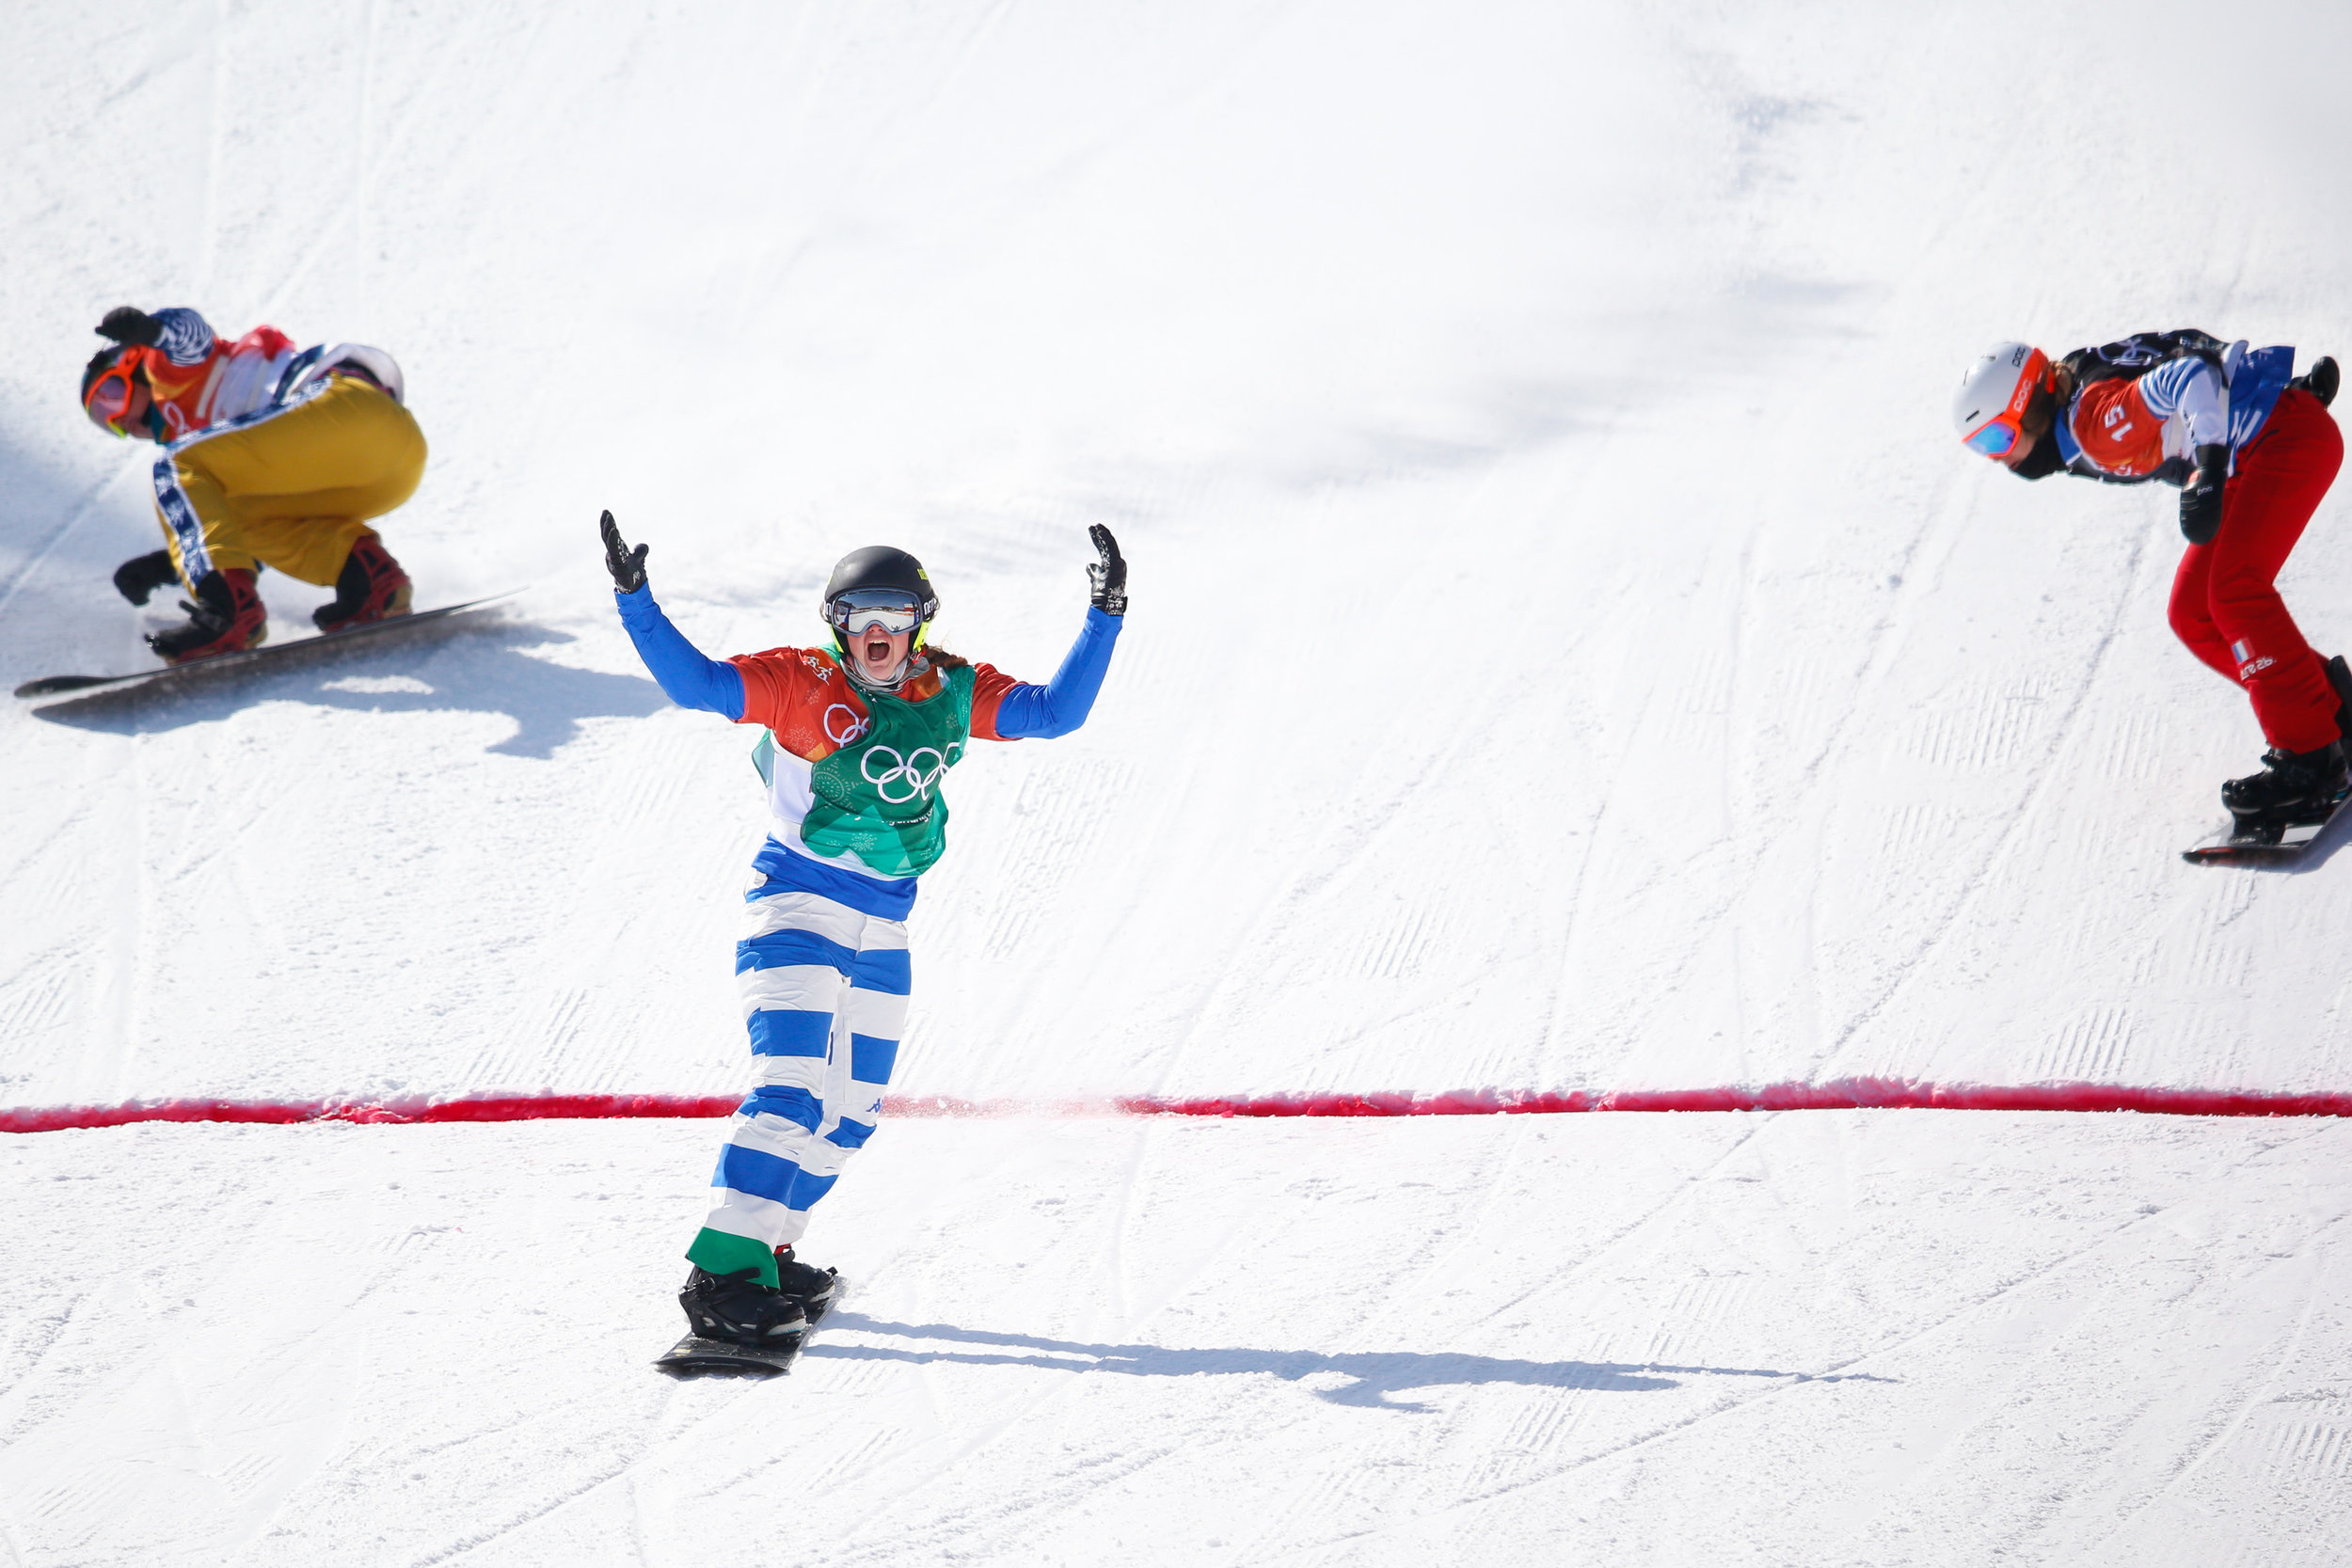 From left Eva Samkova of the Czech Republic, Michela Moioli of Italy, Julia Pereira de Sousa Mabileau of France, cross the finish line in the Ladies' Snowboard Cross big final at Phoenix Snow Park in Pyeongchang, South Korea on February 16, 2018. Moioli took gold in the event with Pereira de Sousa Mabileau and Samkova taking silver and bronze respectively. Photo by Matthew Healey/UPI